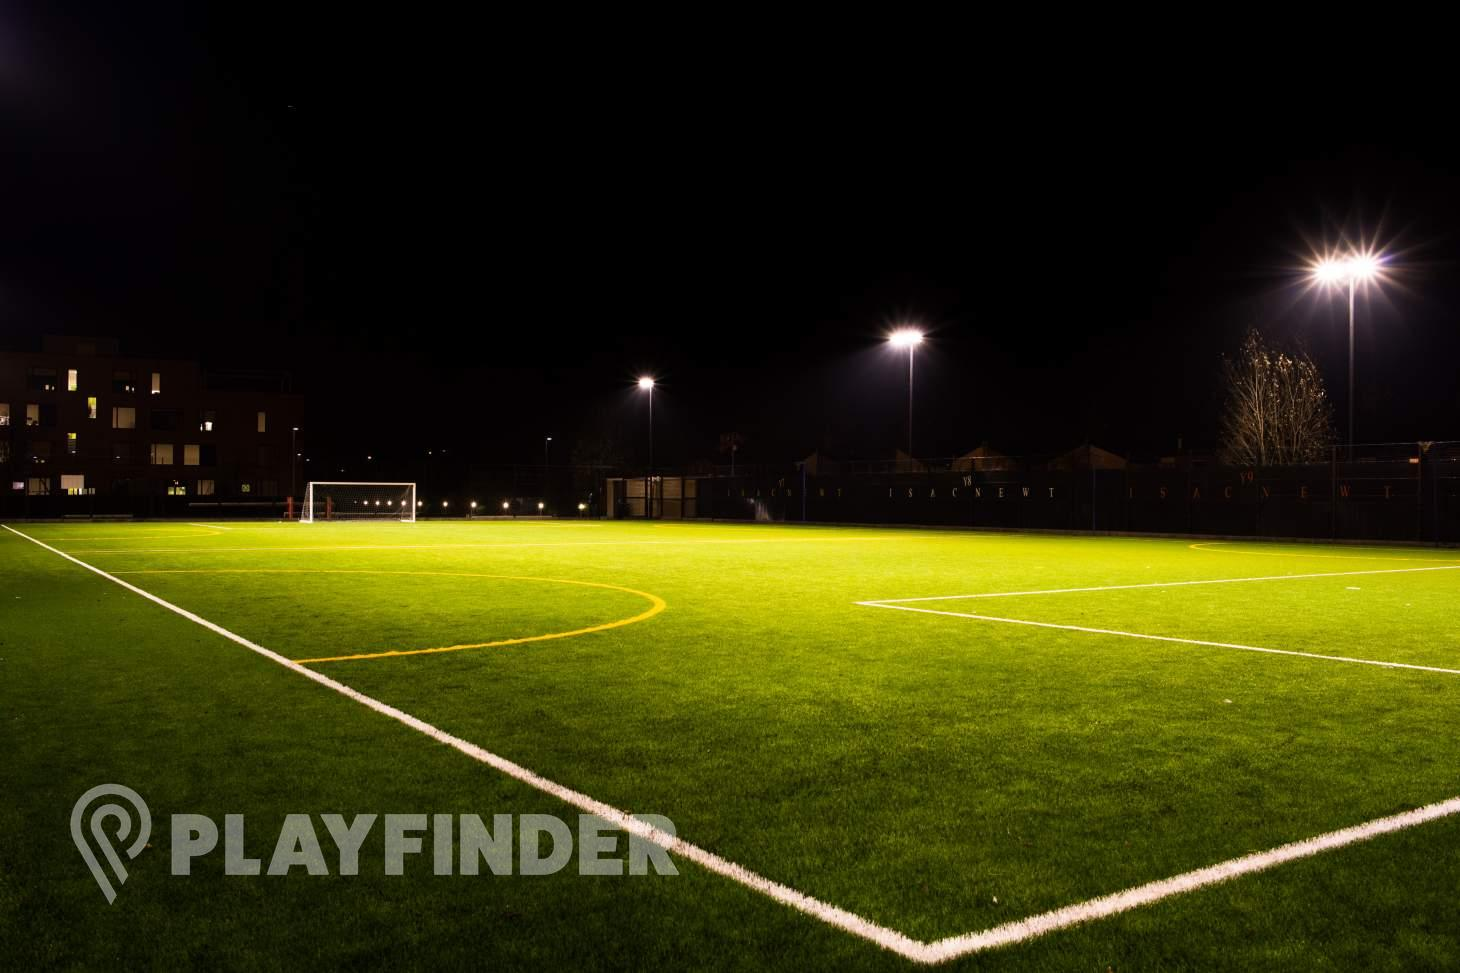 Isaac Newton Academy 7 a side | 3G Astroturf football pitch